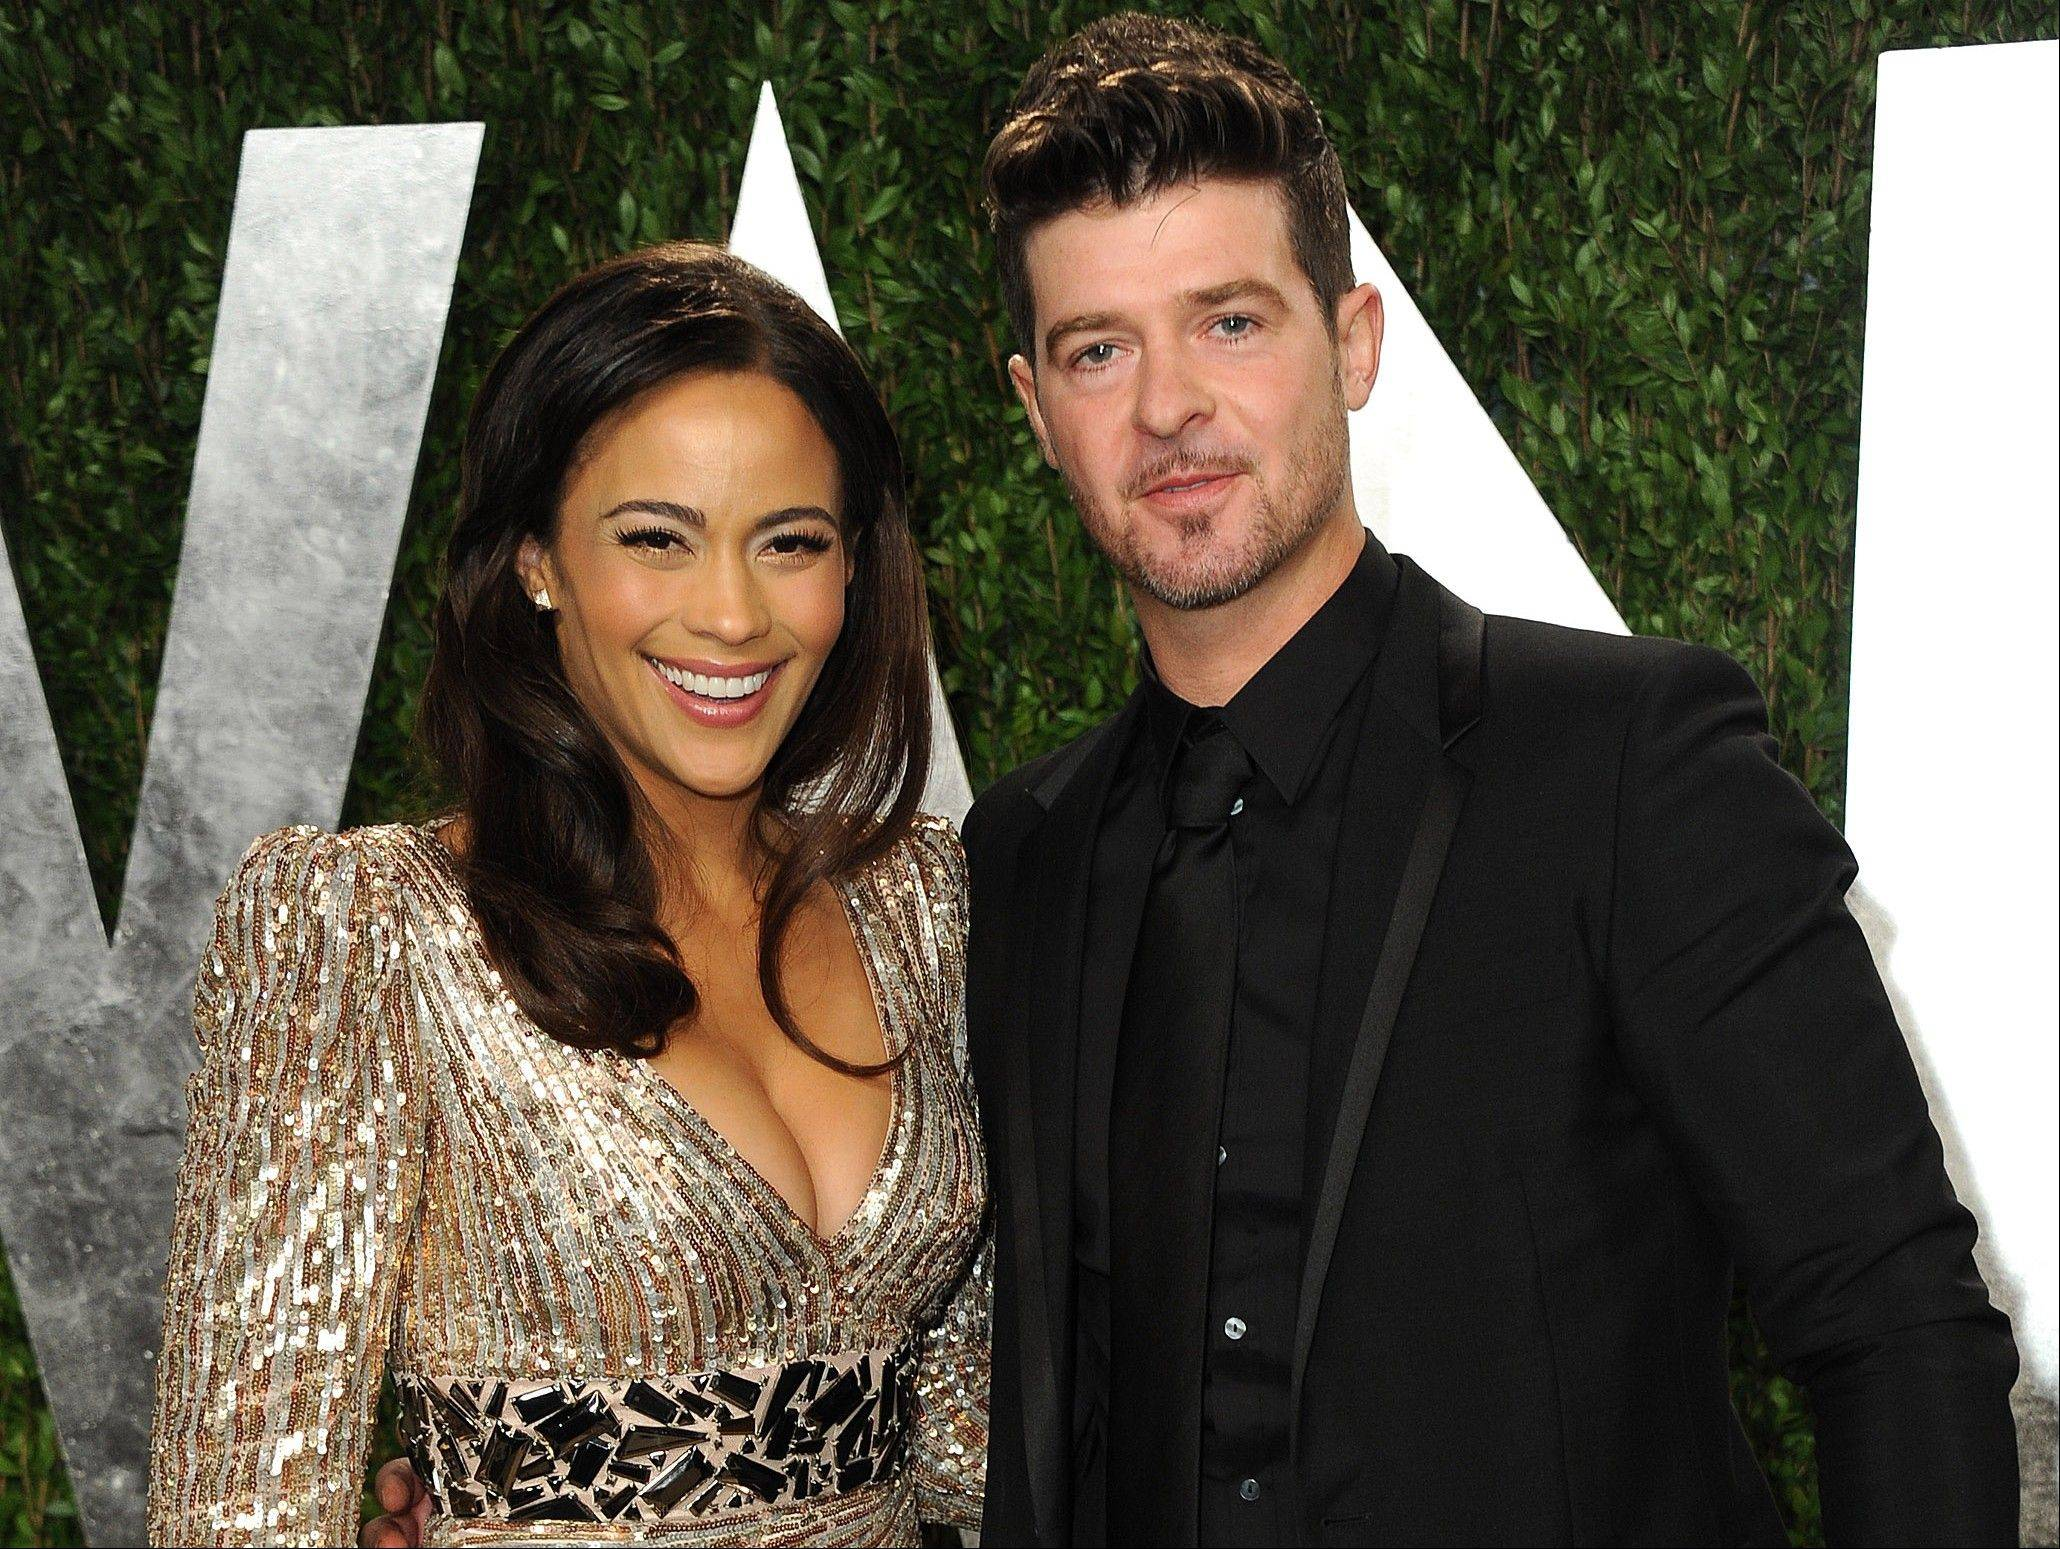 FILE - In this Feb. 24, 2013 file photo, Paula Patton and Robin Thicke arrive at the 2013 Vanity Fair Oscars Viewing and After Party at the Sunset Plaza Hotel in West Hollywood, Calif. Patton is busy promoting her second film this year, the upcoming romantic comedy �Baggage Claim.� Personally, Patton is relishing the success of her recording artist husband Thicke, whose catchy summer hit �Blurred Lines� has topped Billboard's Hot 100 chart. (Photo by Jordan Strauss/Invision/AP, File)